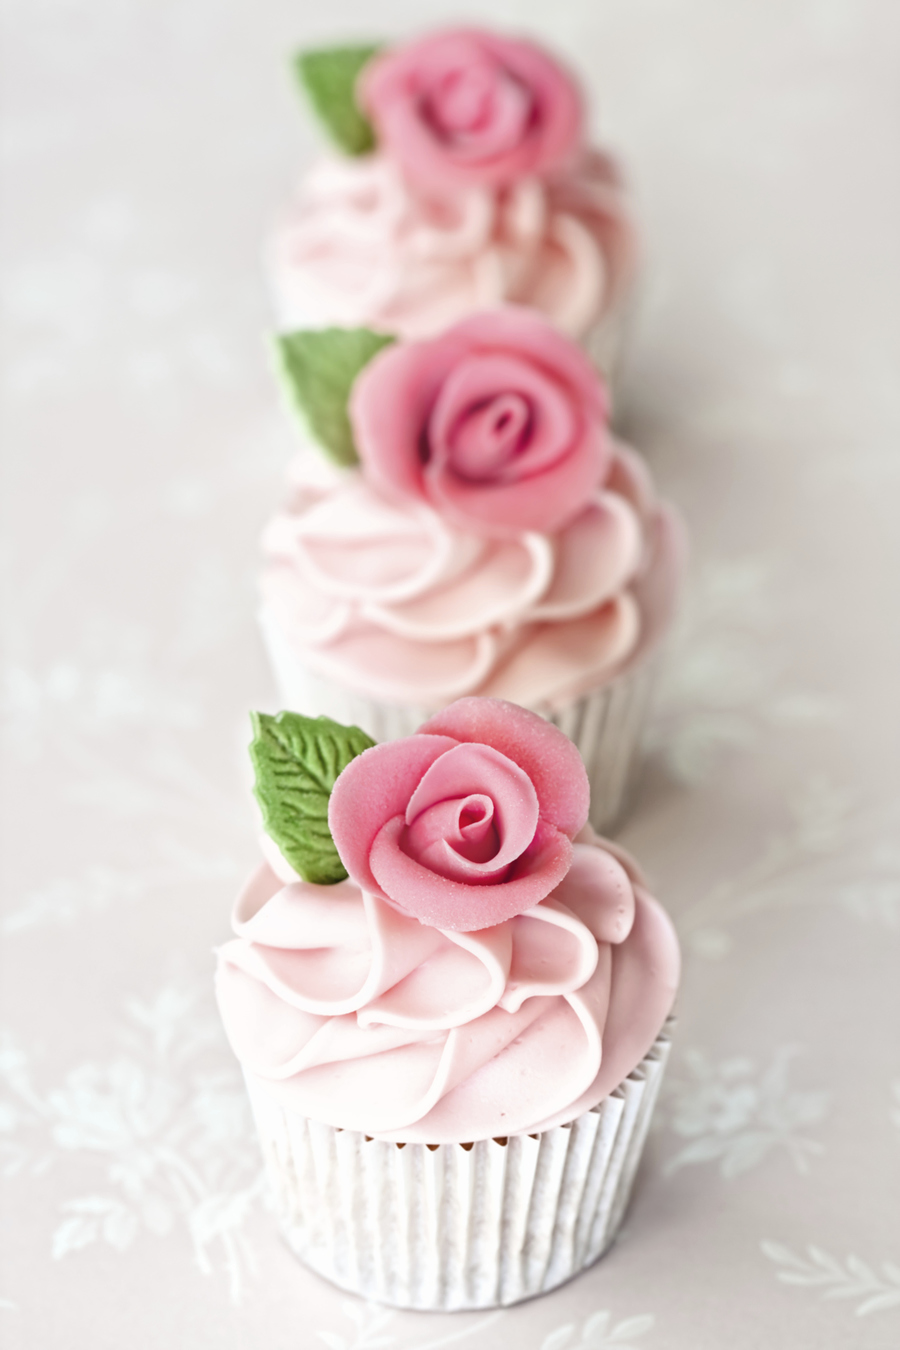 Cake Decorating Central Recipes : Almond Rose Water Cupcakes - CakeCentral.com